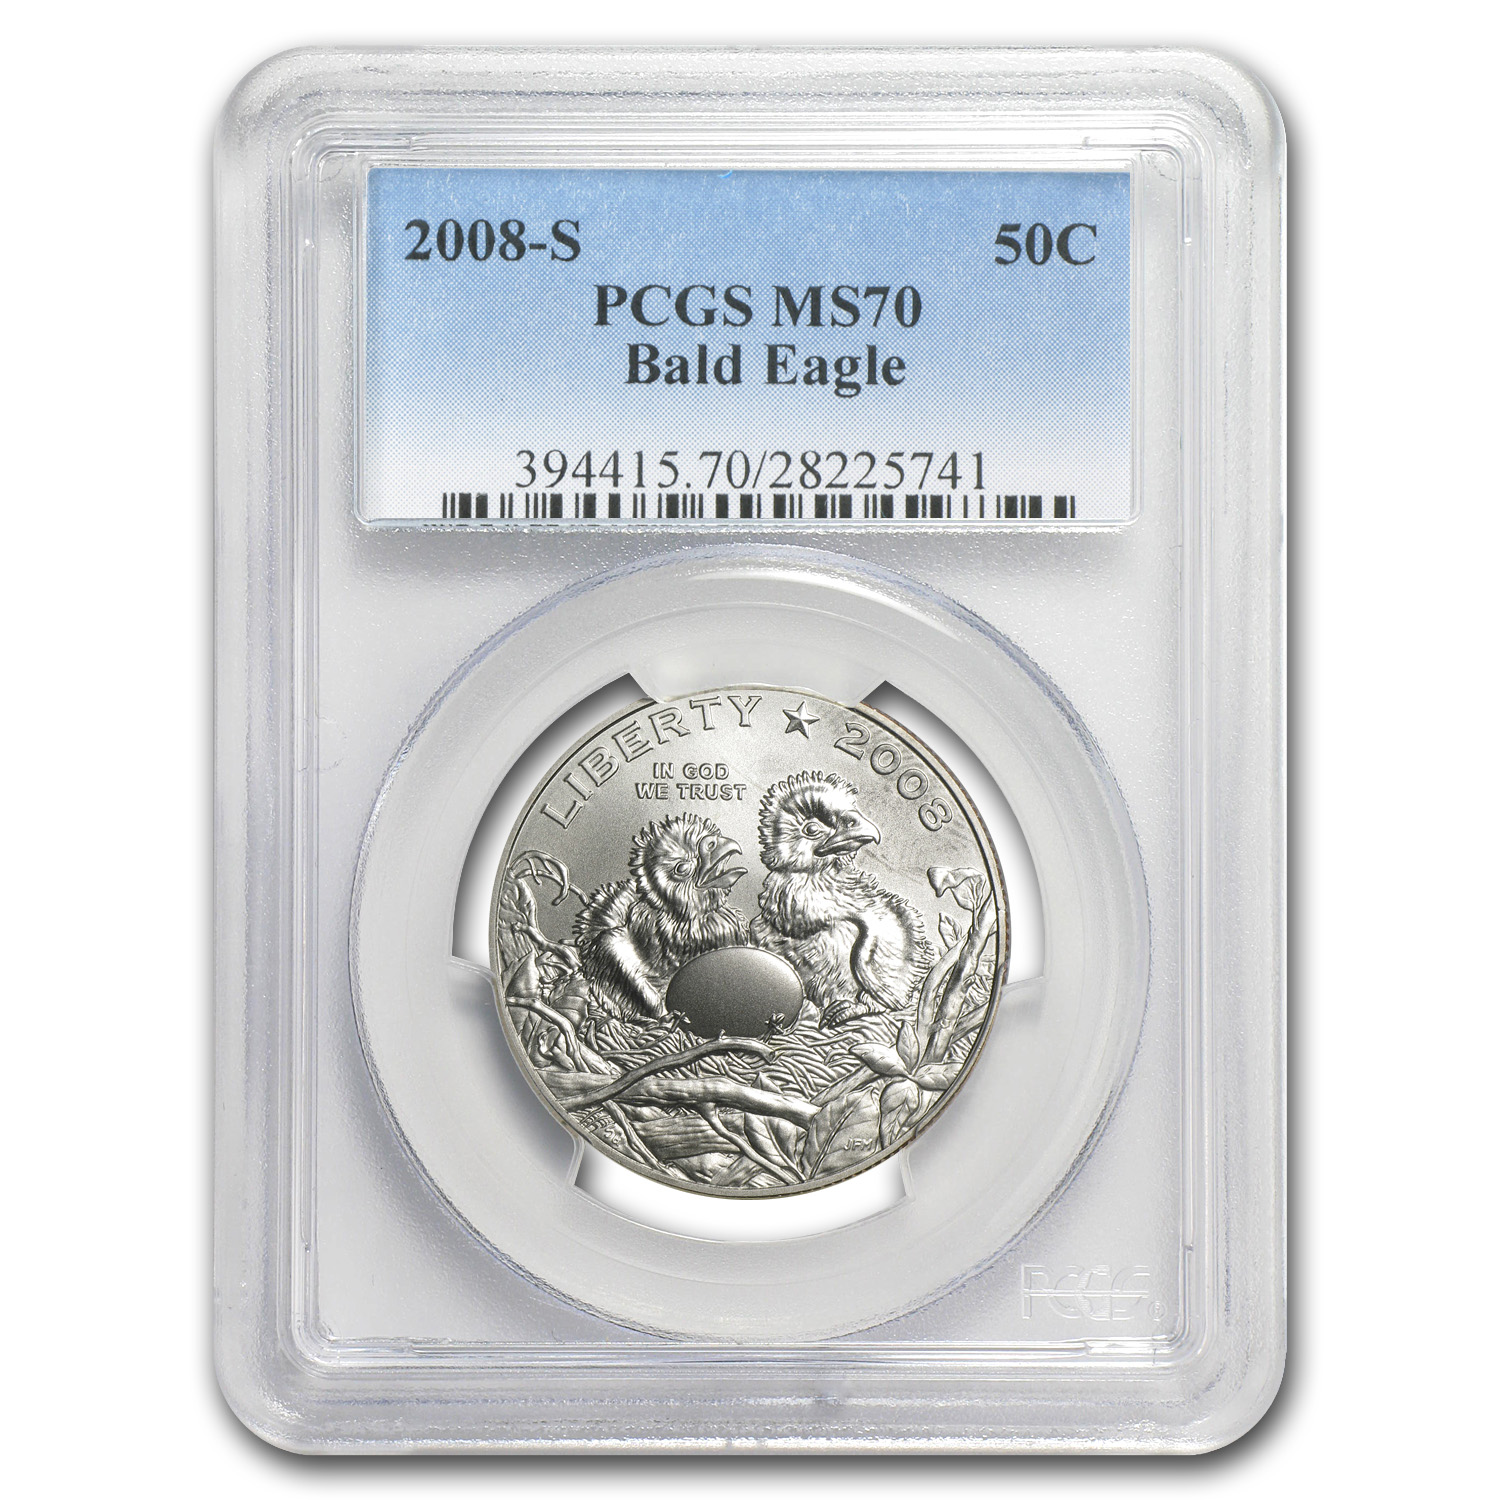 2008-S Bald Eagle 1/2 Dollar Clad Commem MS-70 PCGS